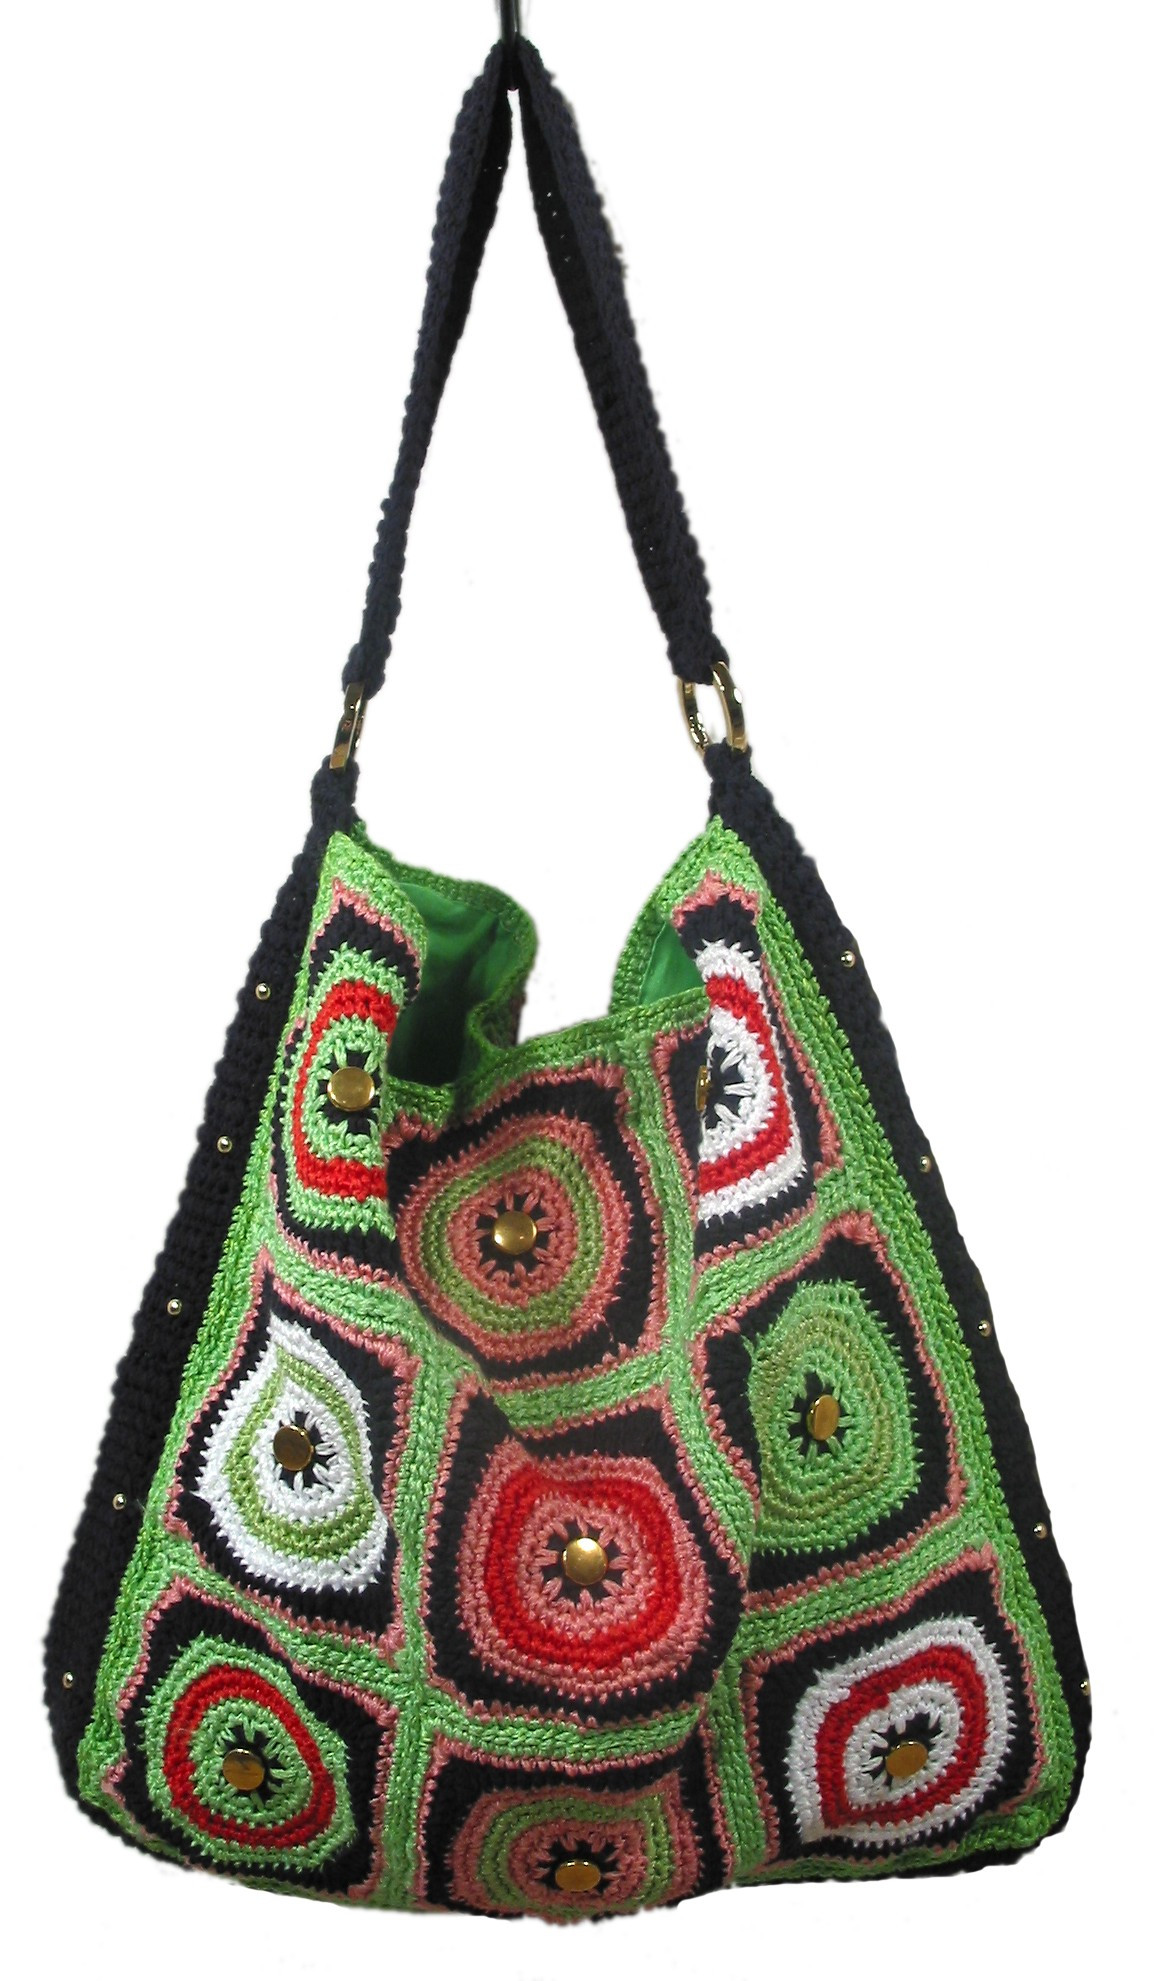 Knitting and Crochet Fresh Knit and Crochet Pattern Handy Hobo Handbags Of Amazing 45 Photos Knitting and Crochet